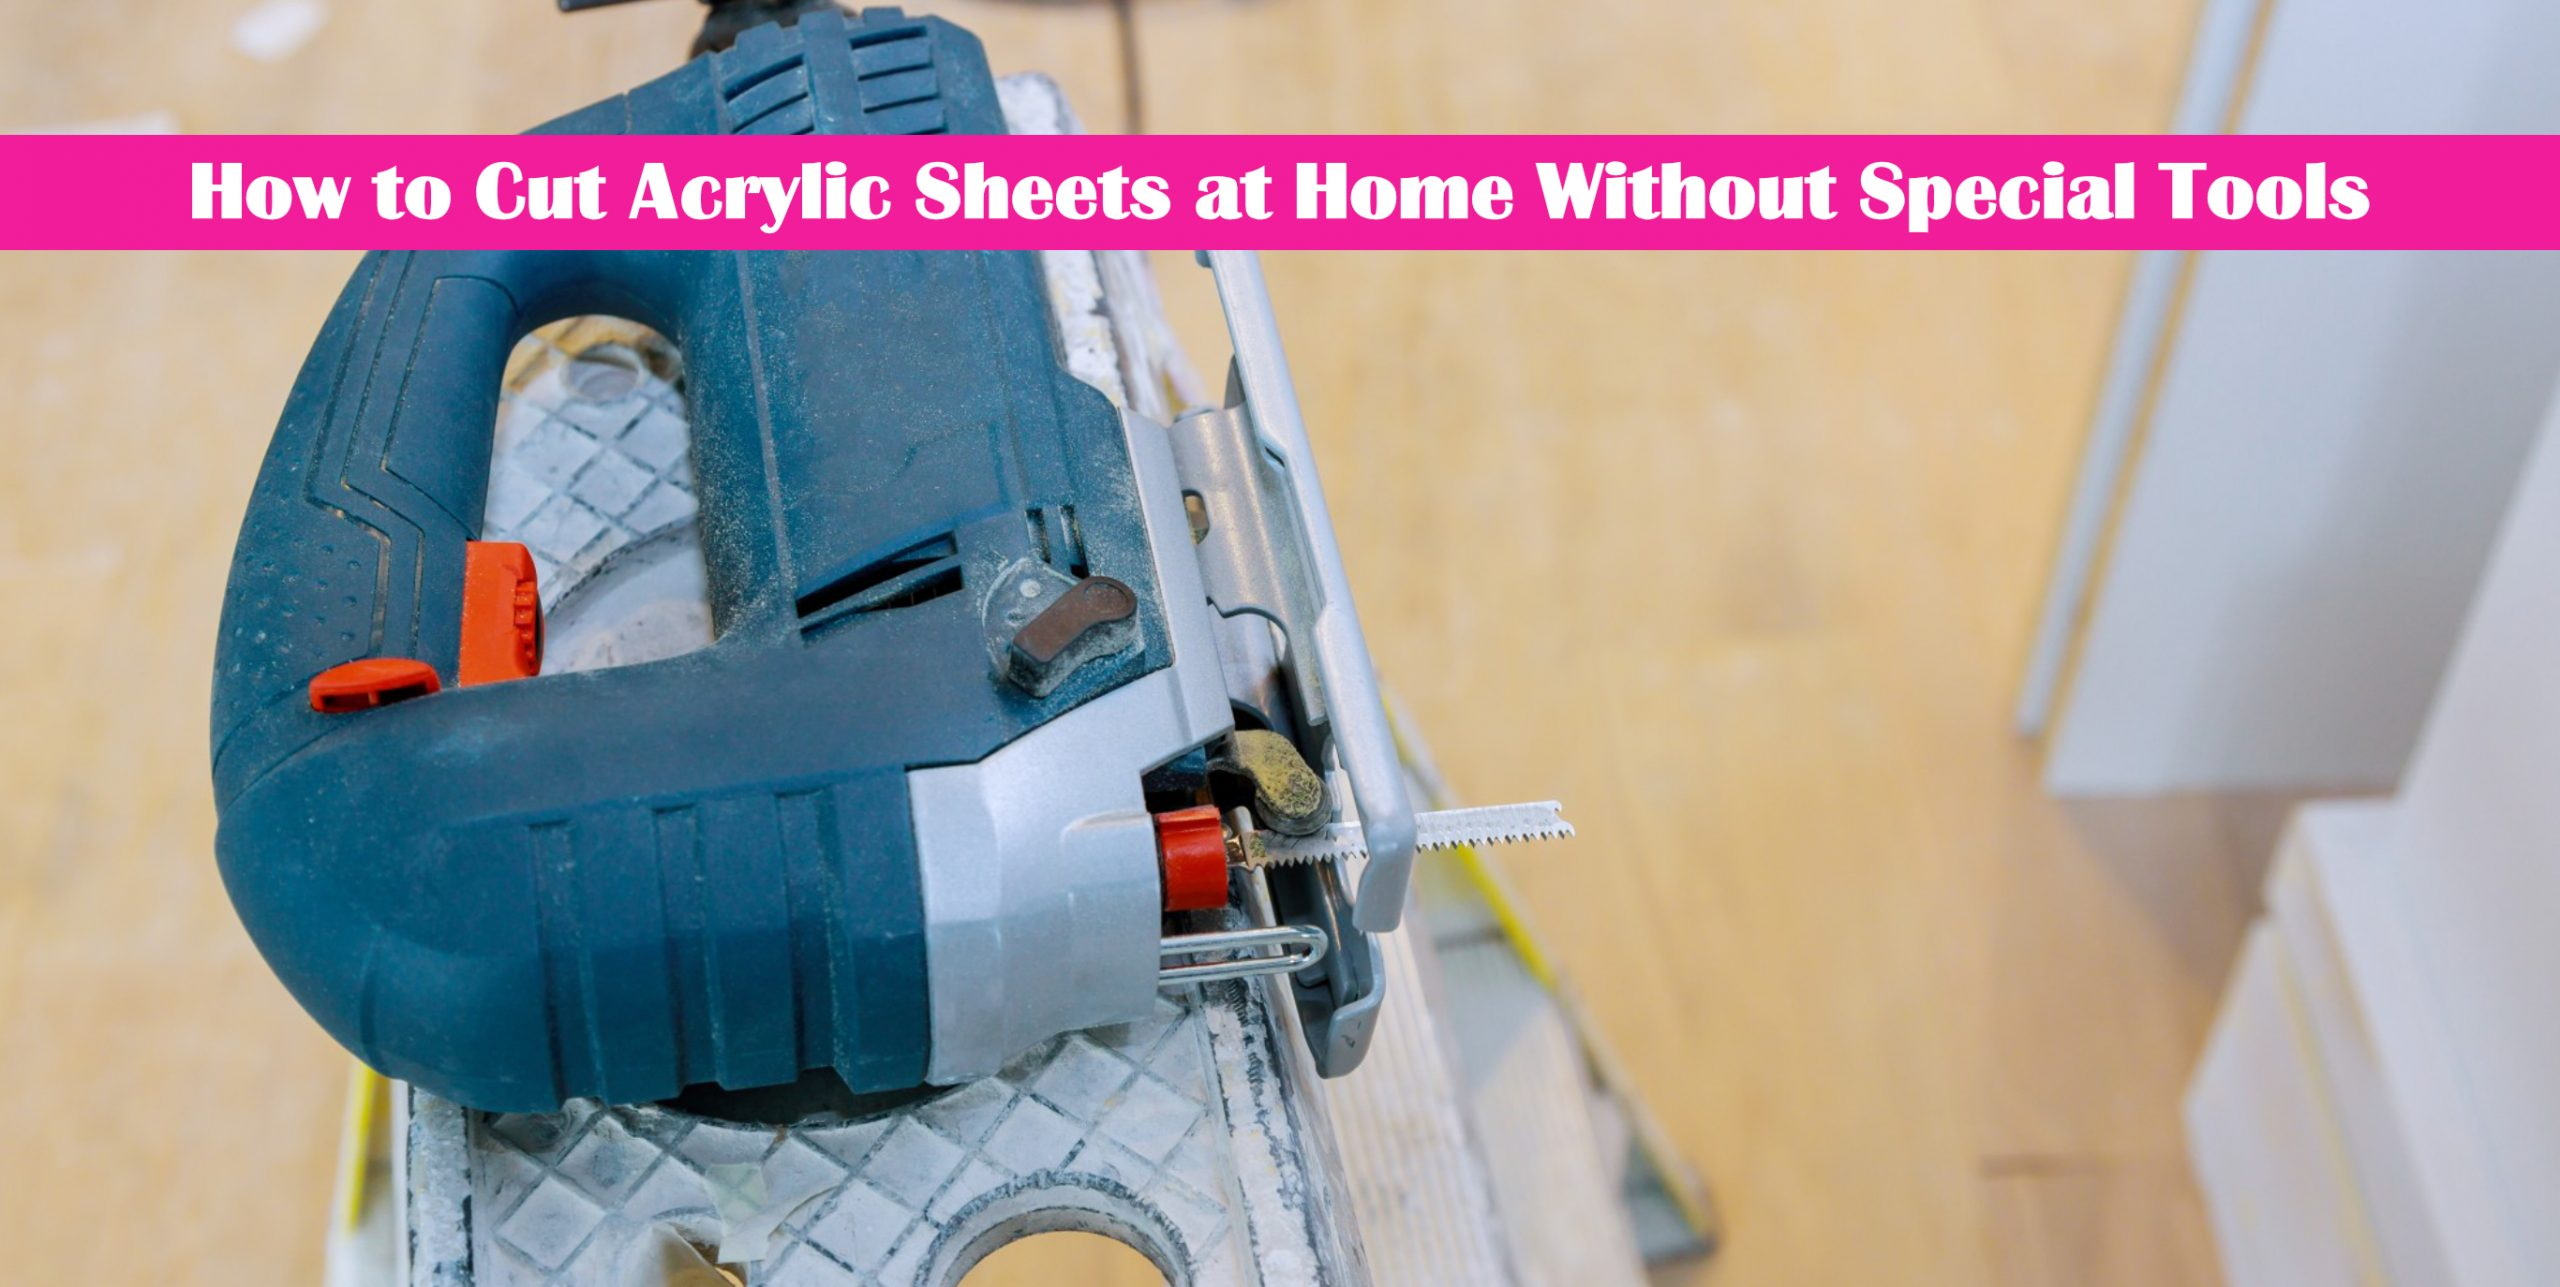 How to Cut Acrylic Sheets at Home Without Special Tools